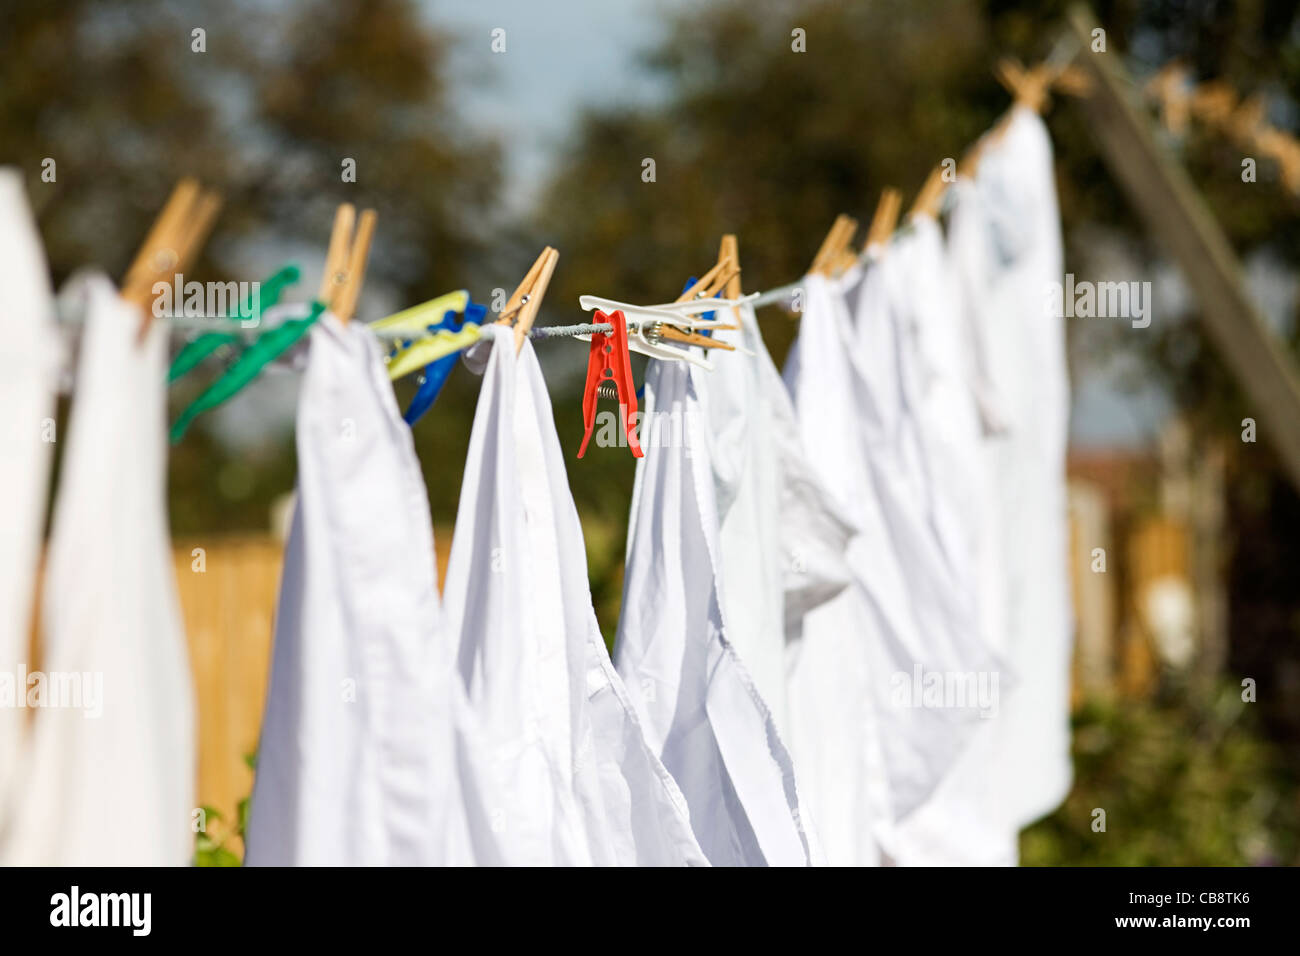 White Washing Pegged to Line Red Peg - Stock Image